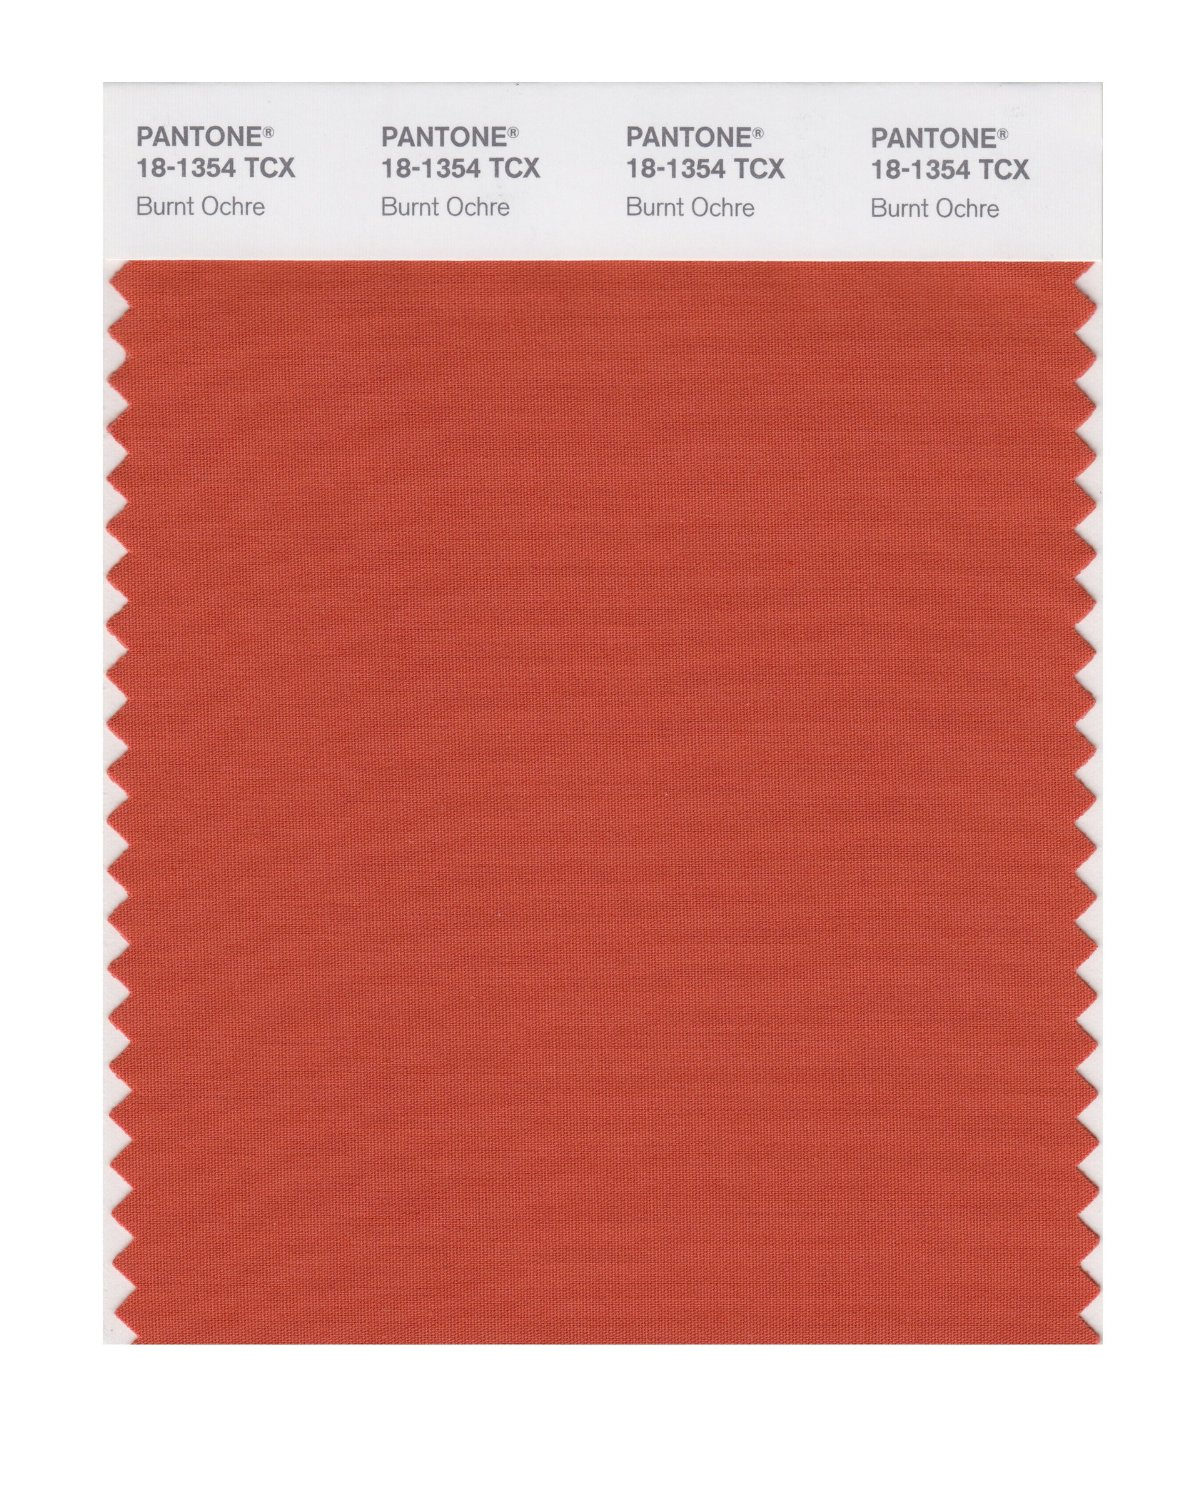 Pantone Smart Swatch 18-1354 Burnt Ochre